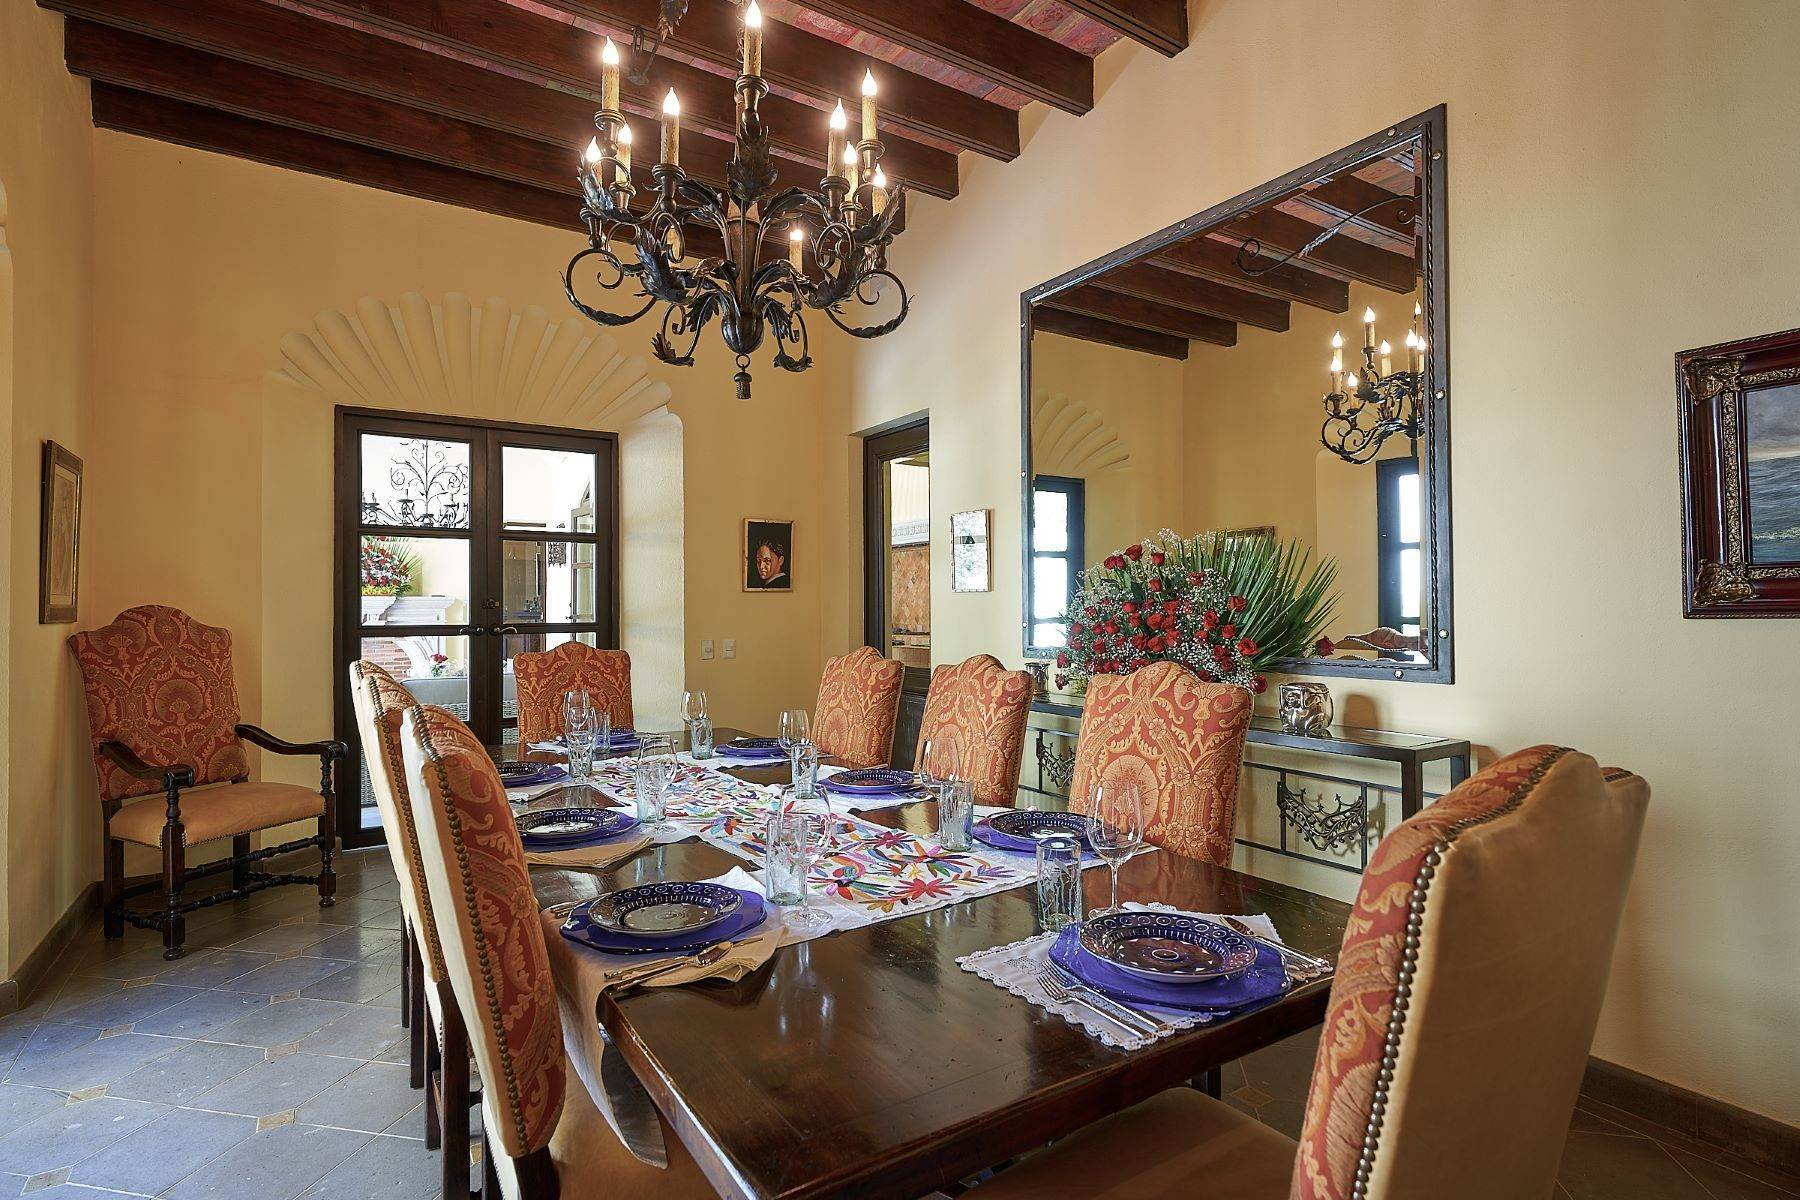 8. Single Family Homes for Sale at Casa Ixchel Privada de Pila Seca 6 San Miguel De Allende, Guanajuato 37700 Mexico